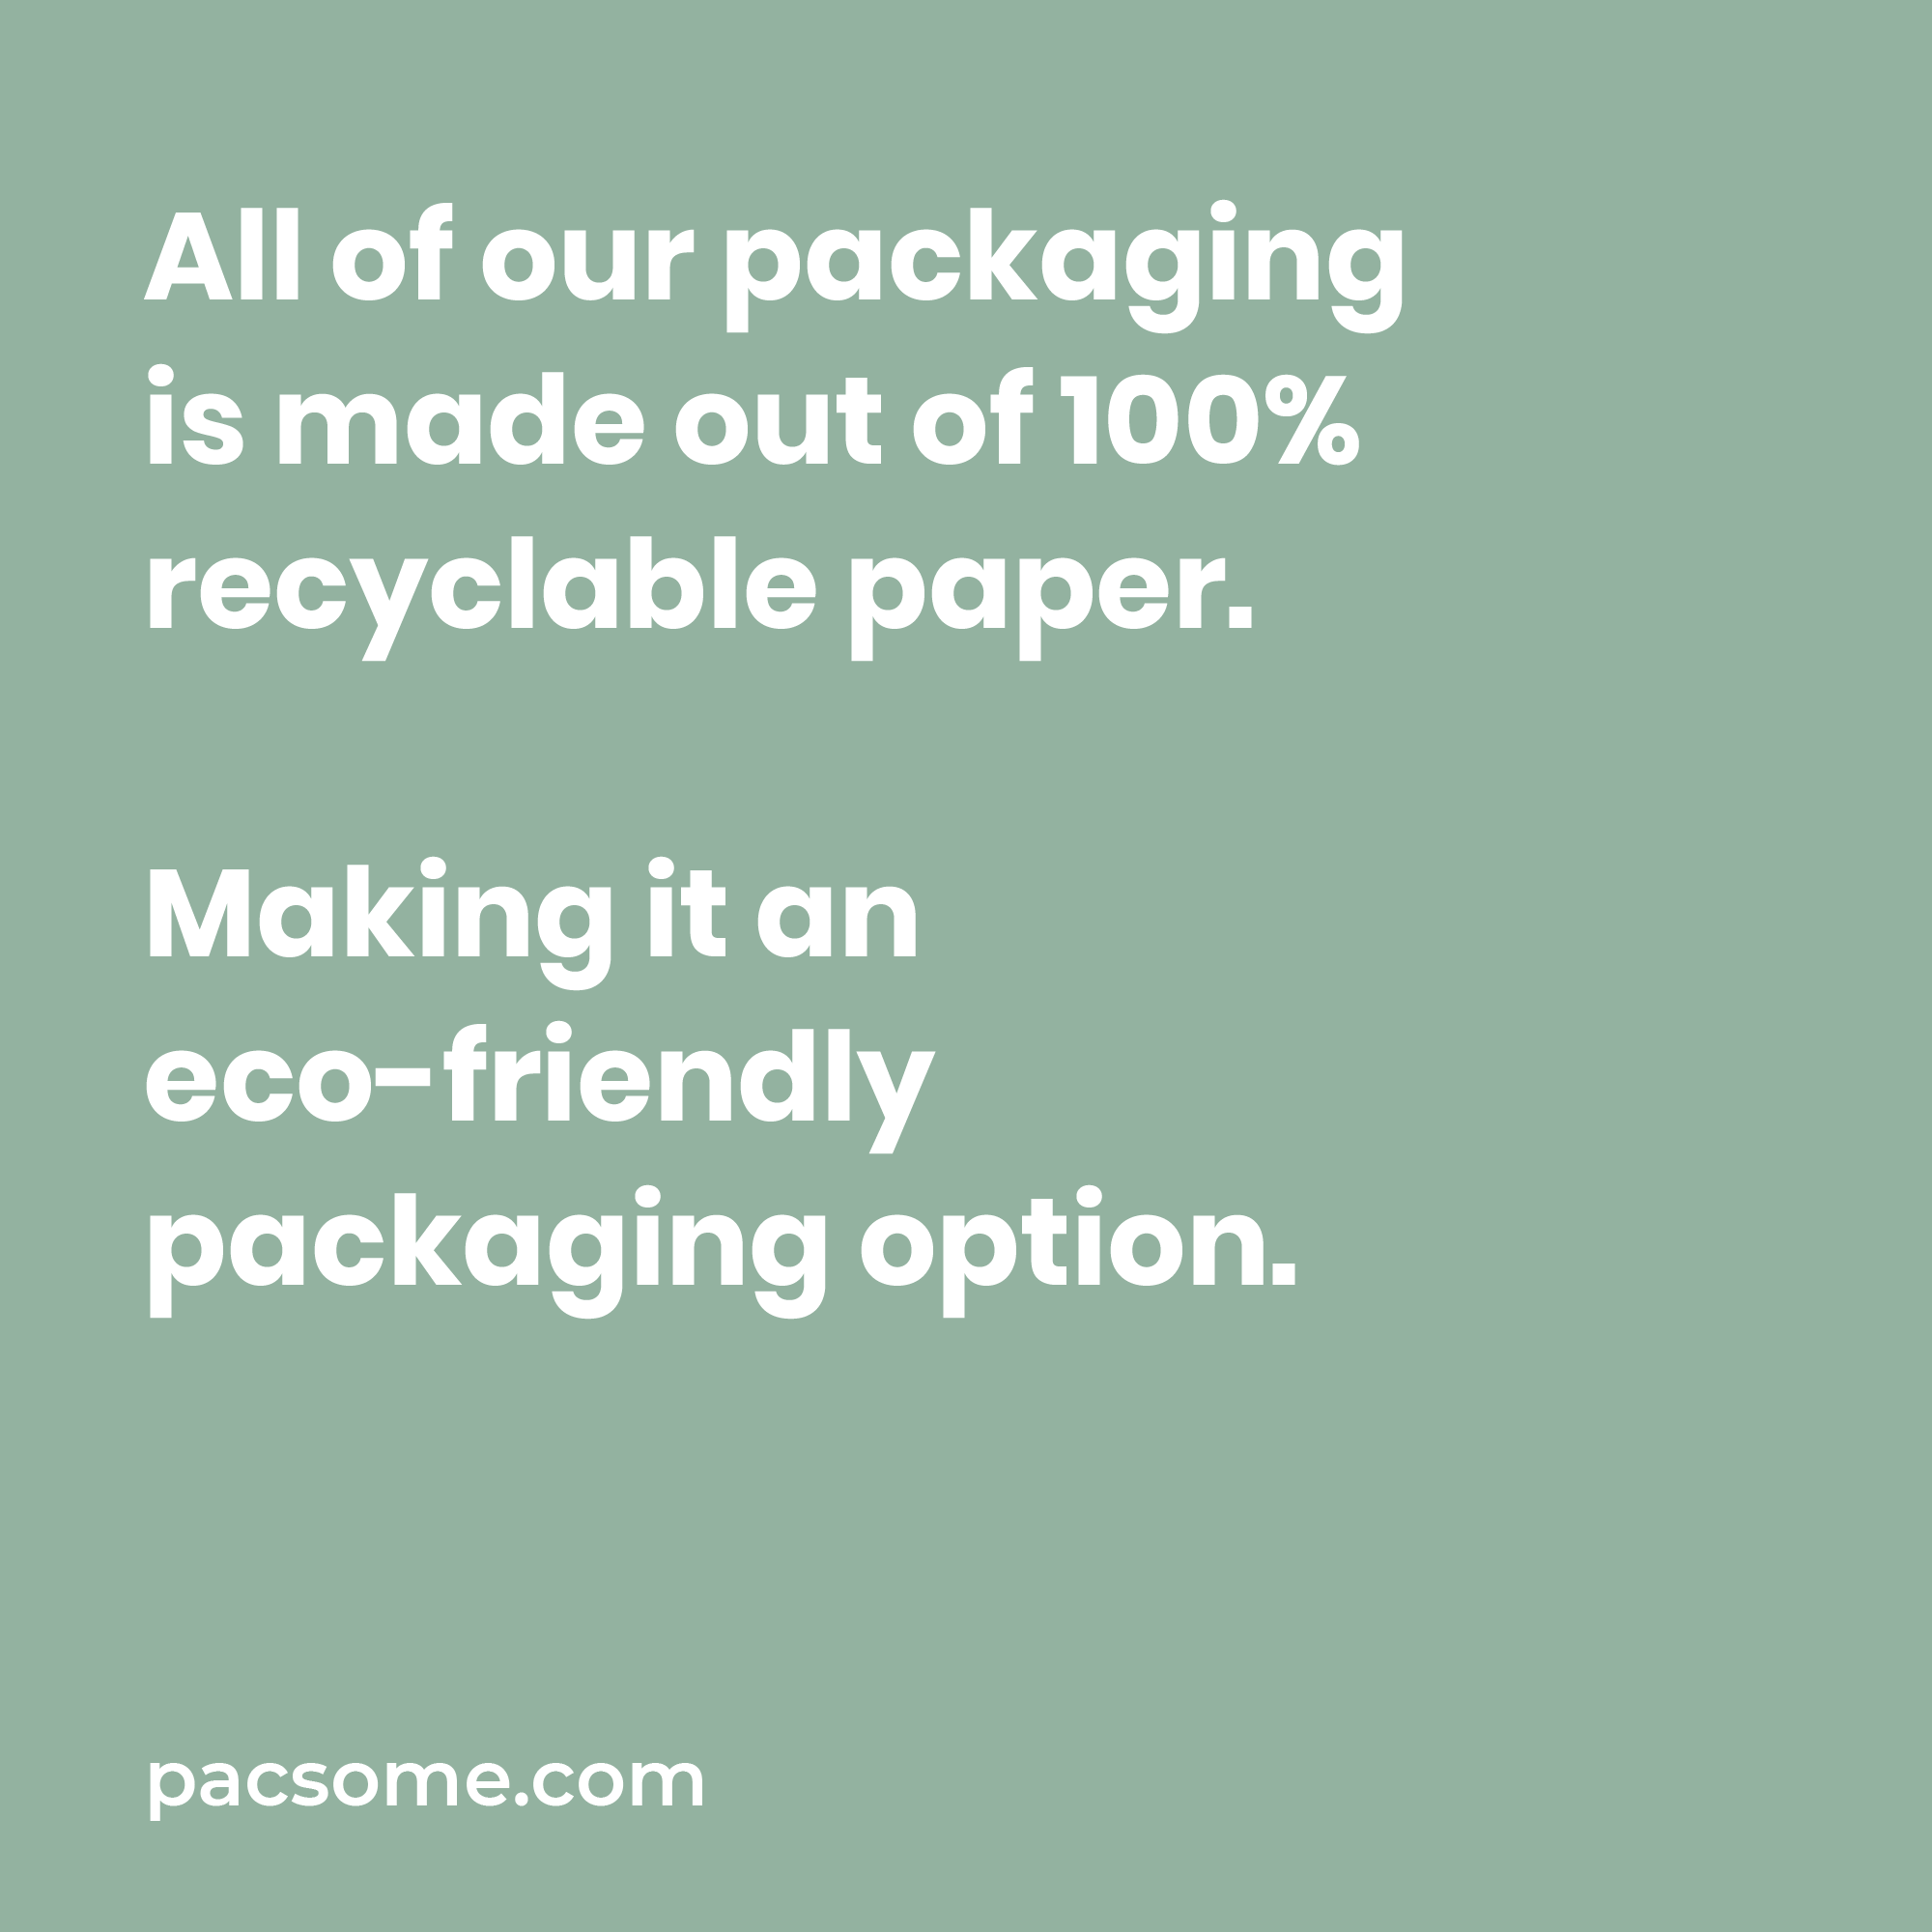 ecofriendly packaging option